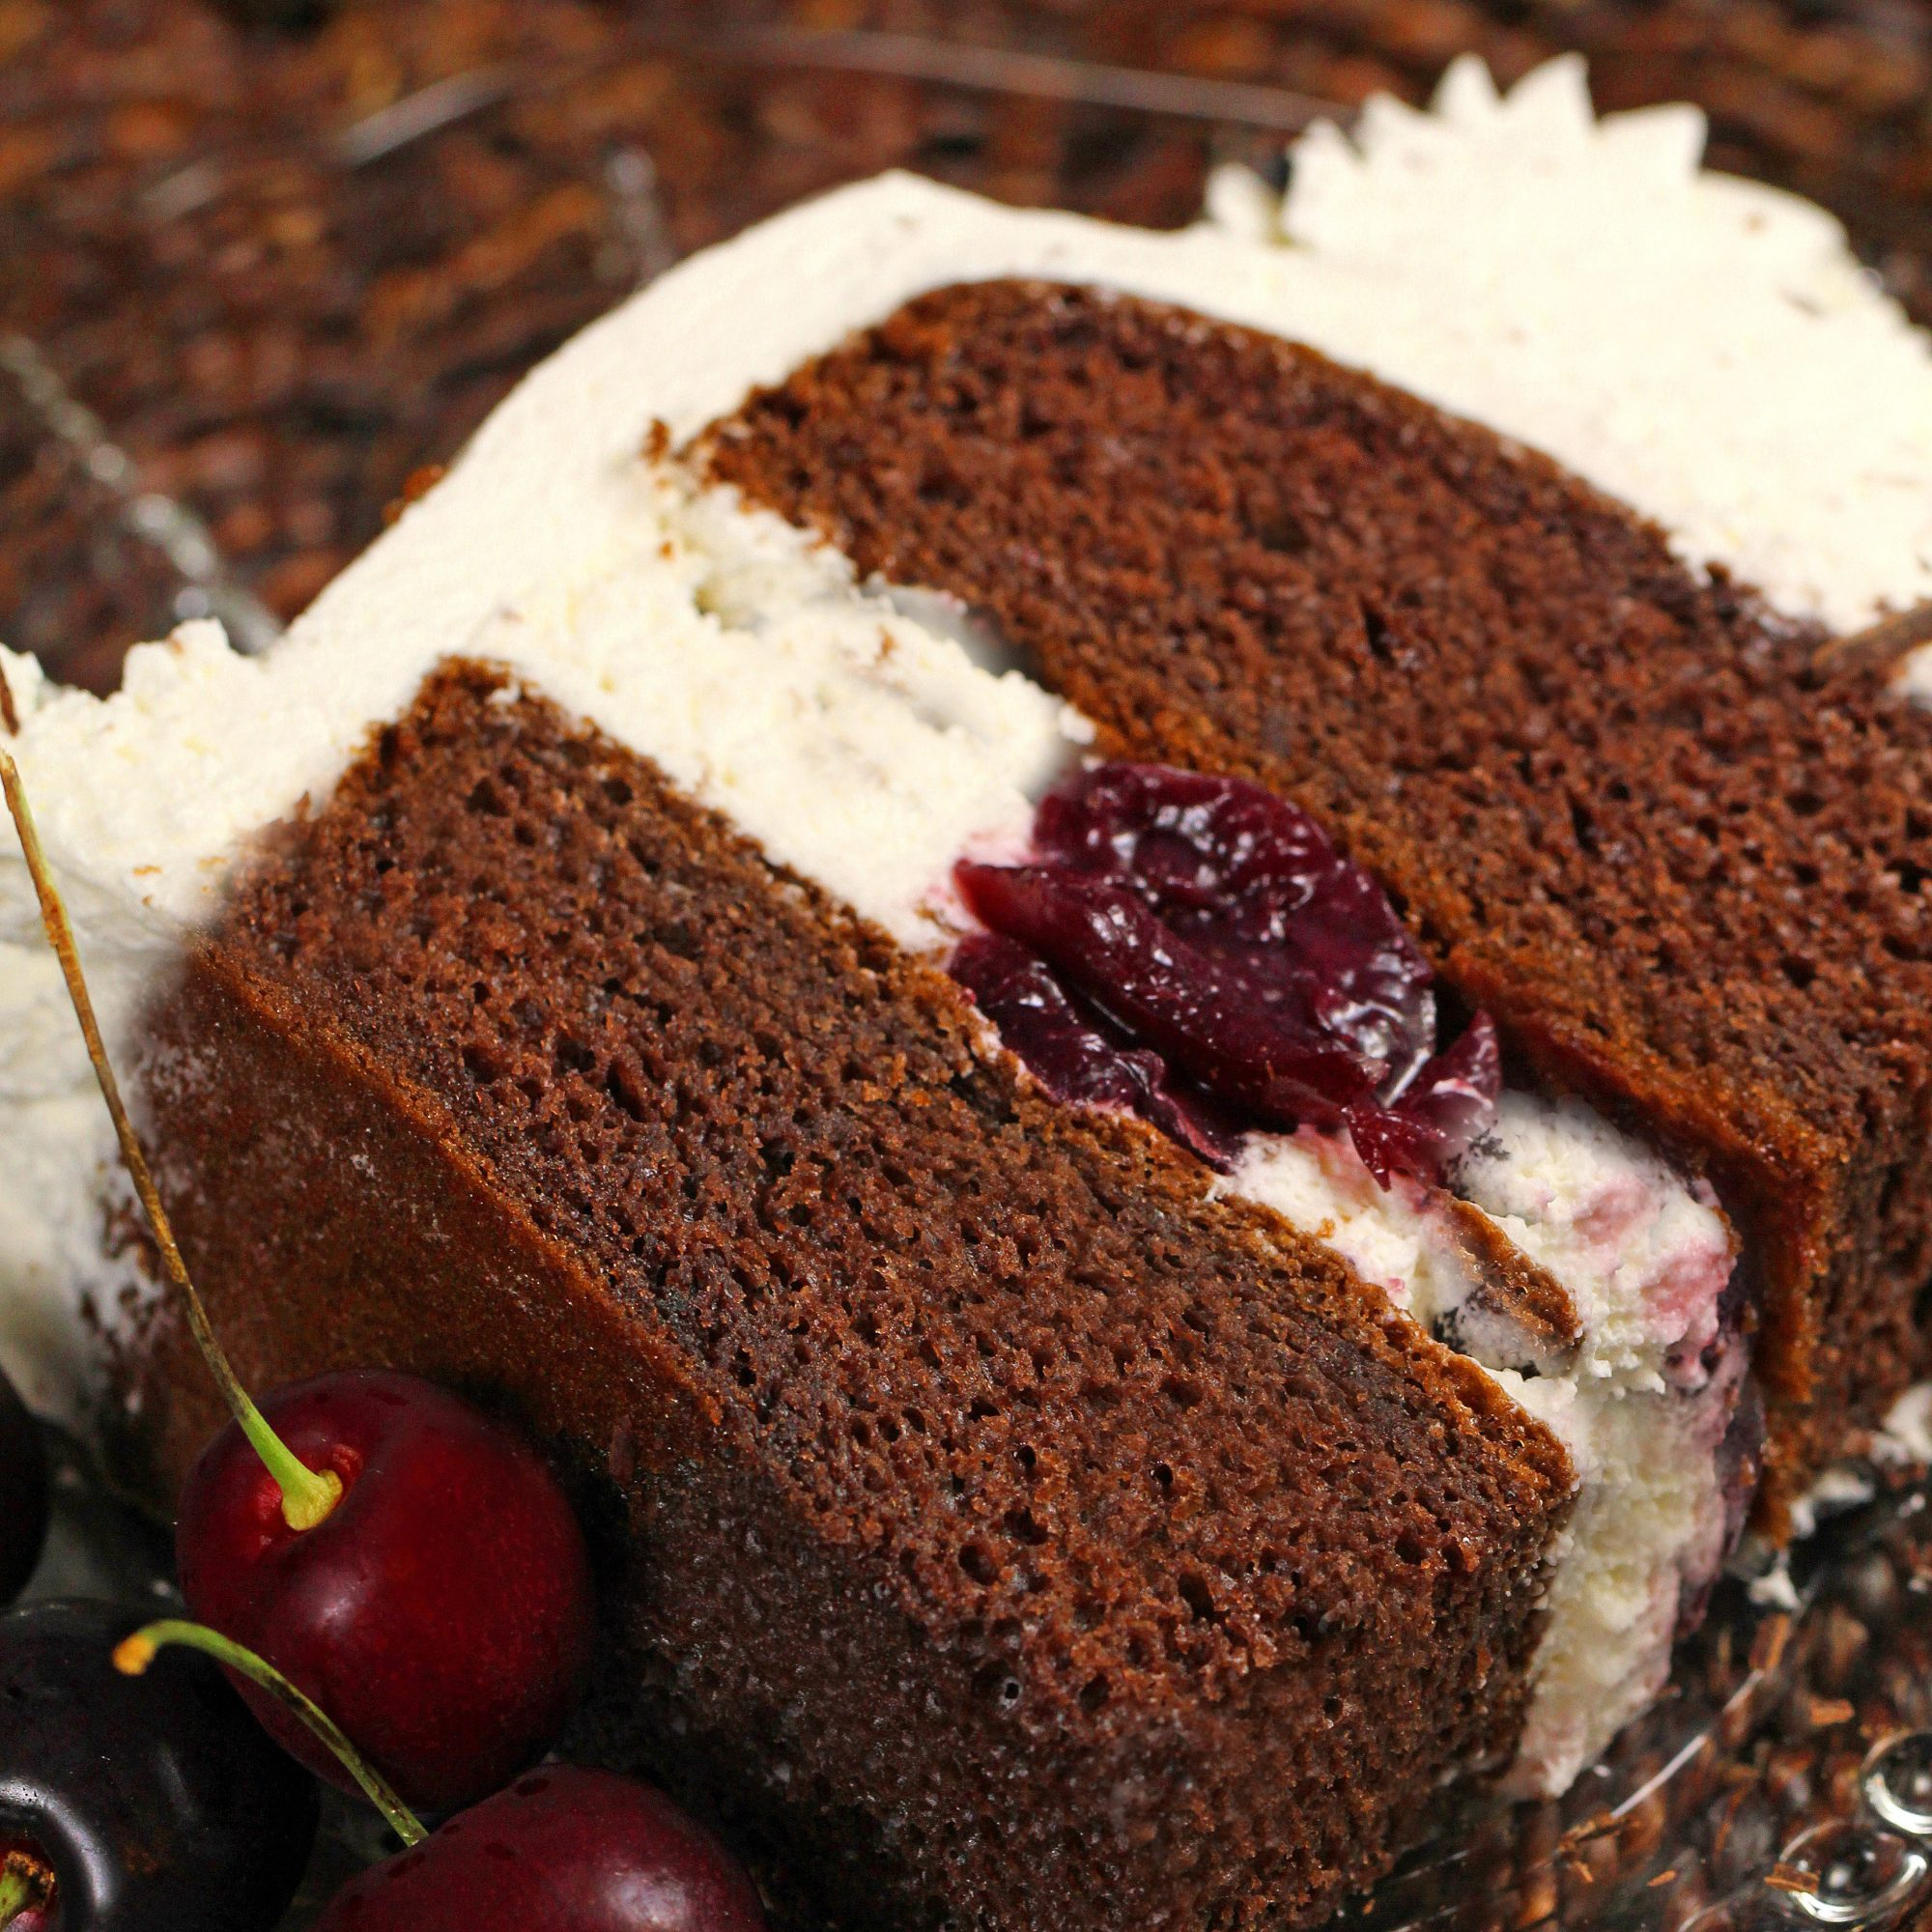 a closeup view of a slice of Black Forest cake with a layer of whipped cream and a cherry in the center, frosted with whipped cream